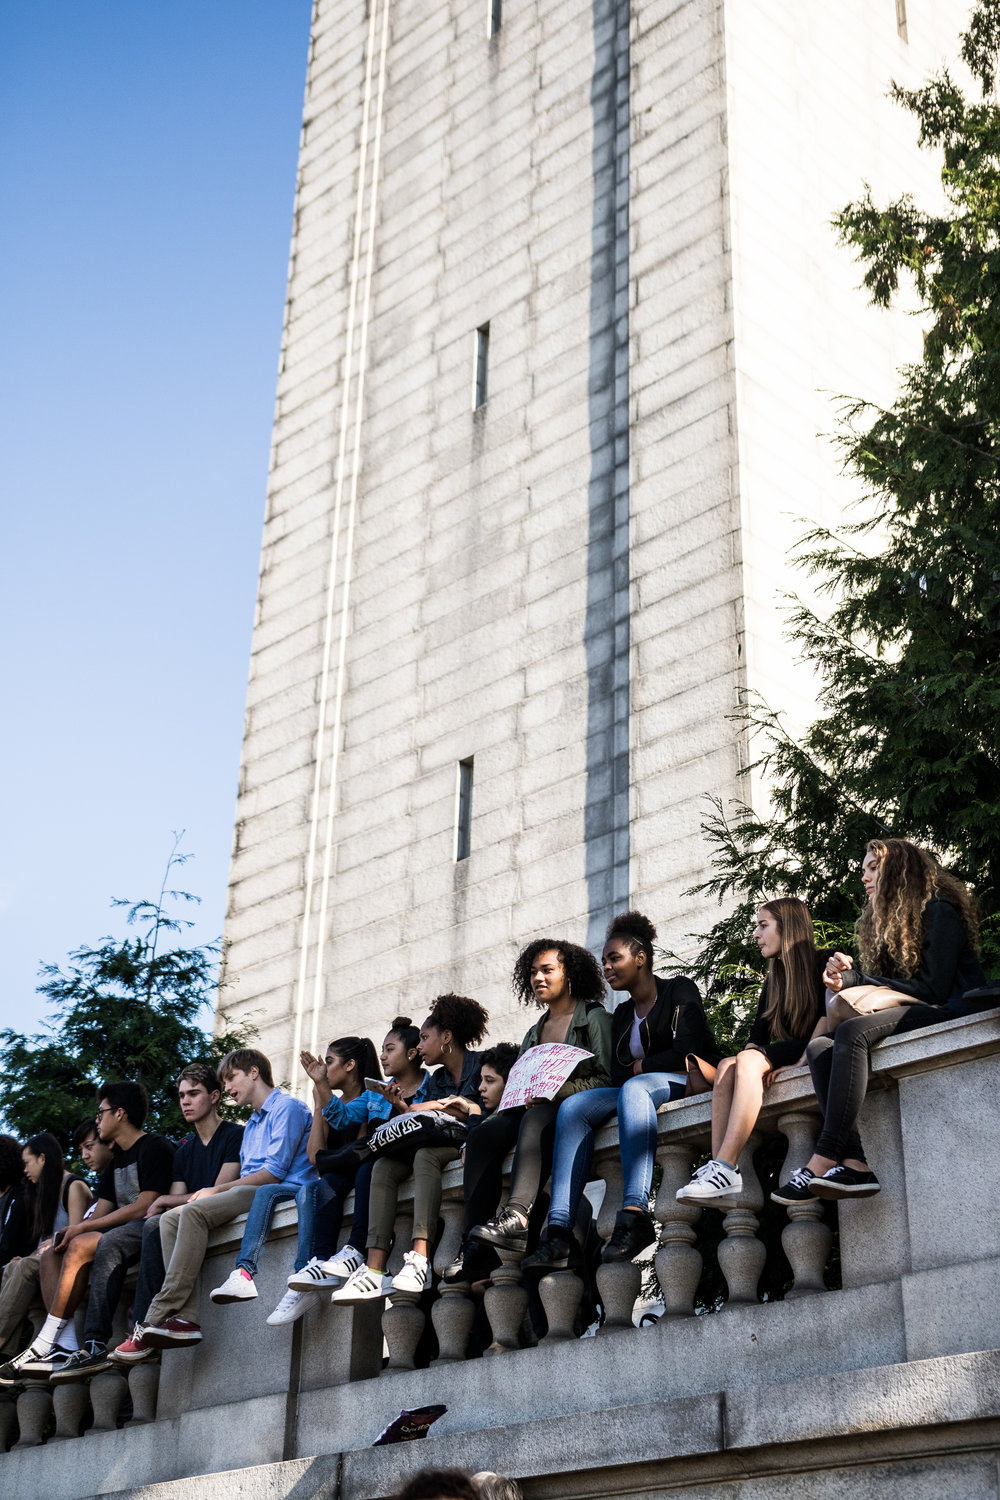 Berkeley-Nov9Rally18-StudentSittingTower1-FullRes.jpg